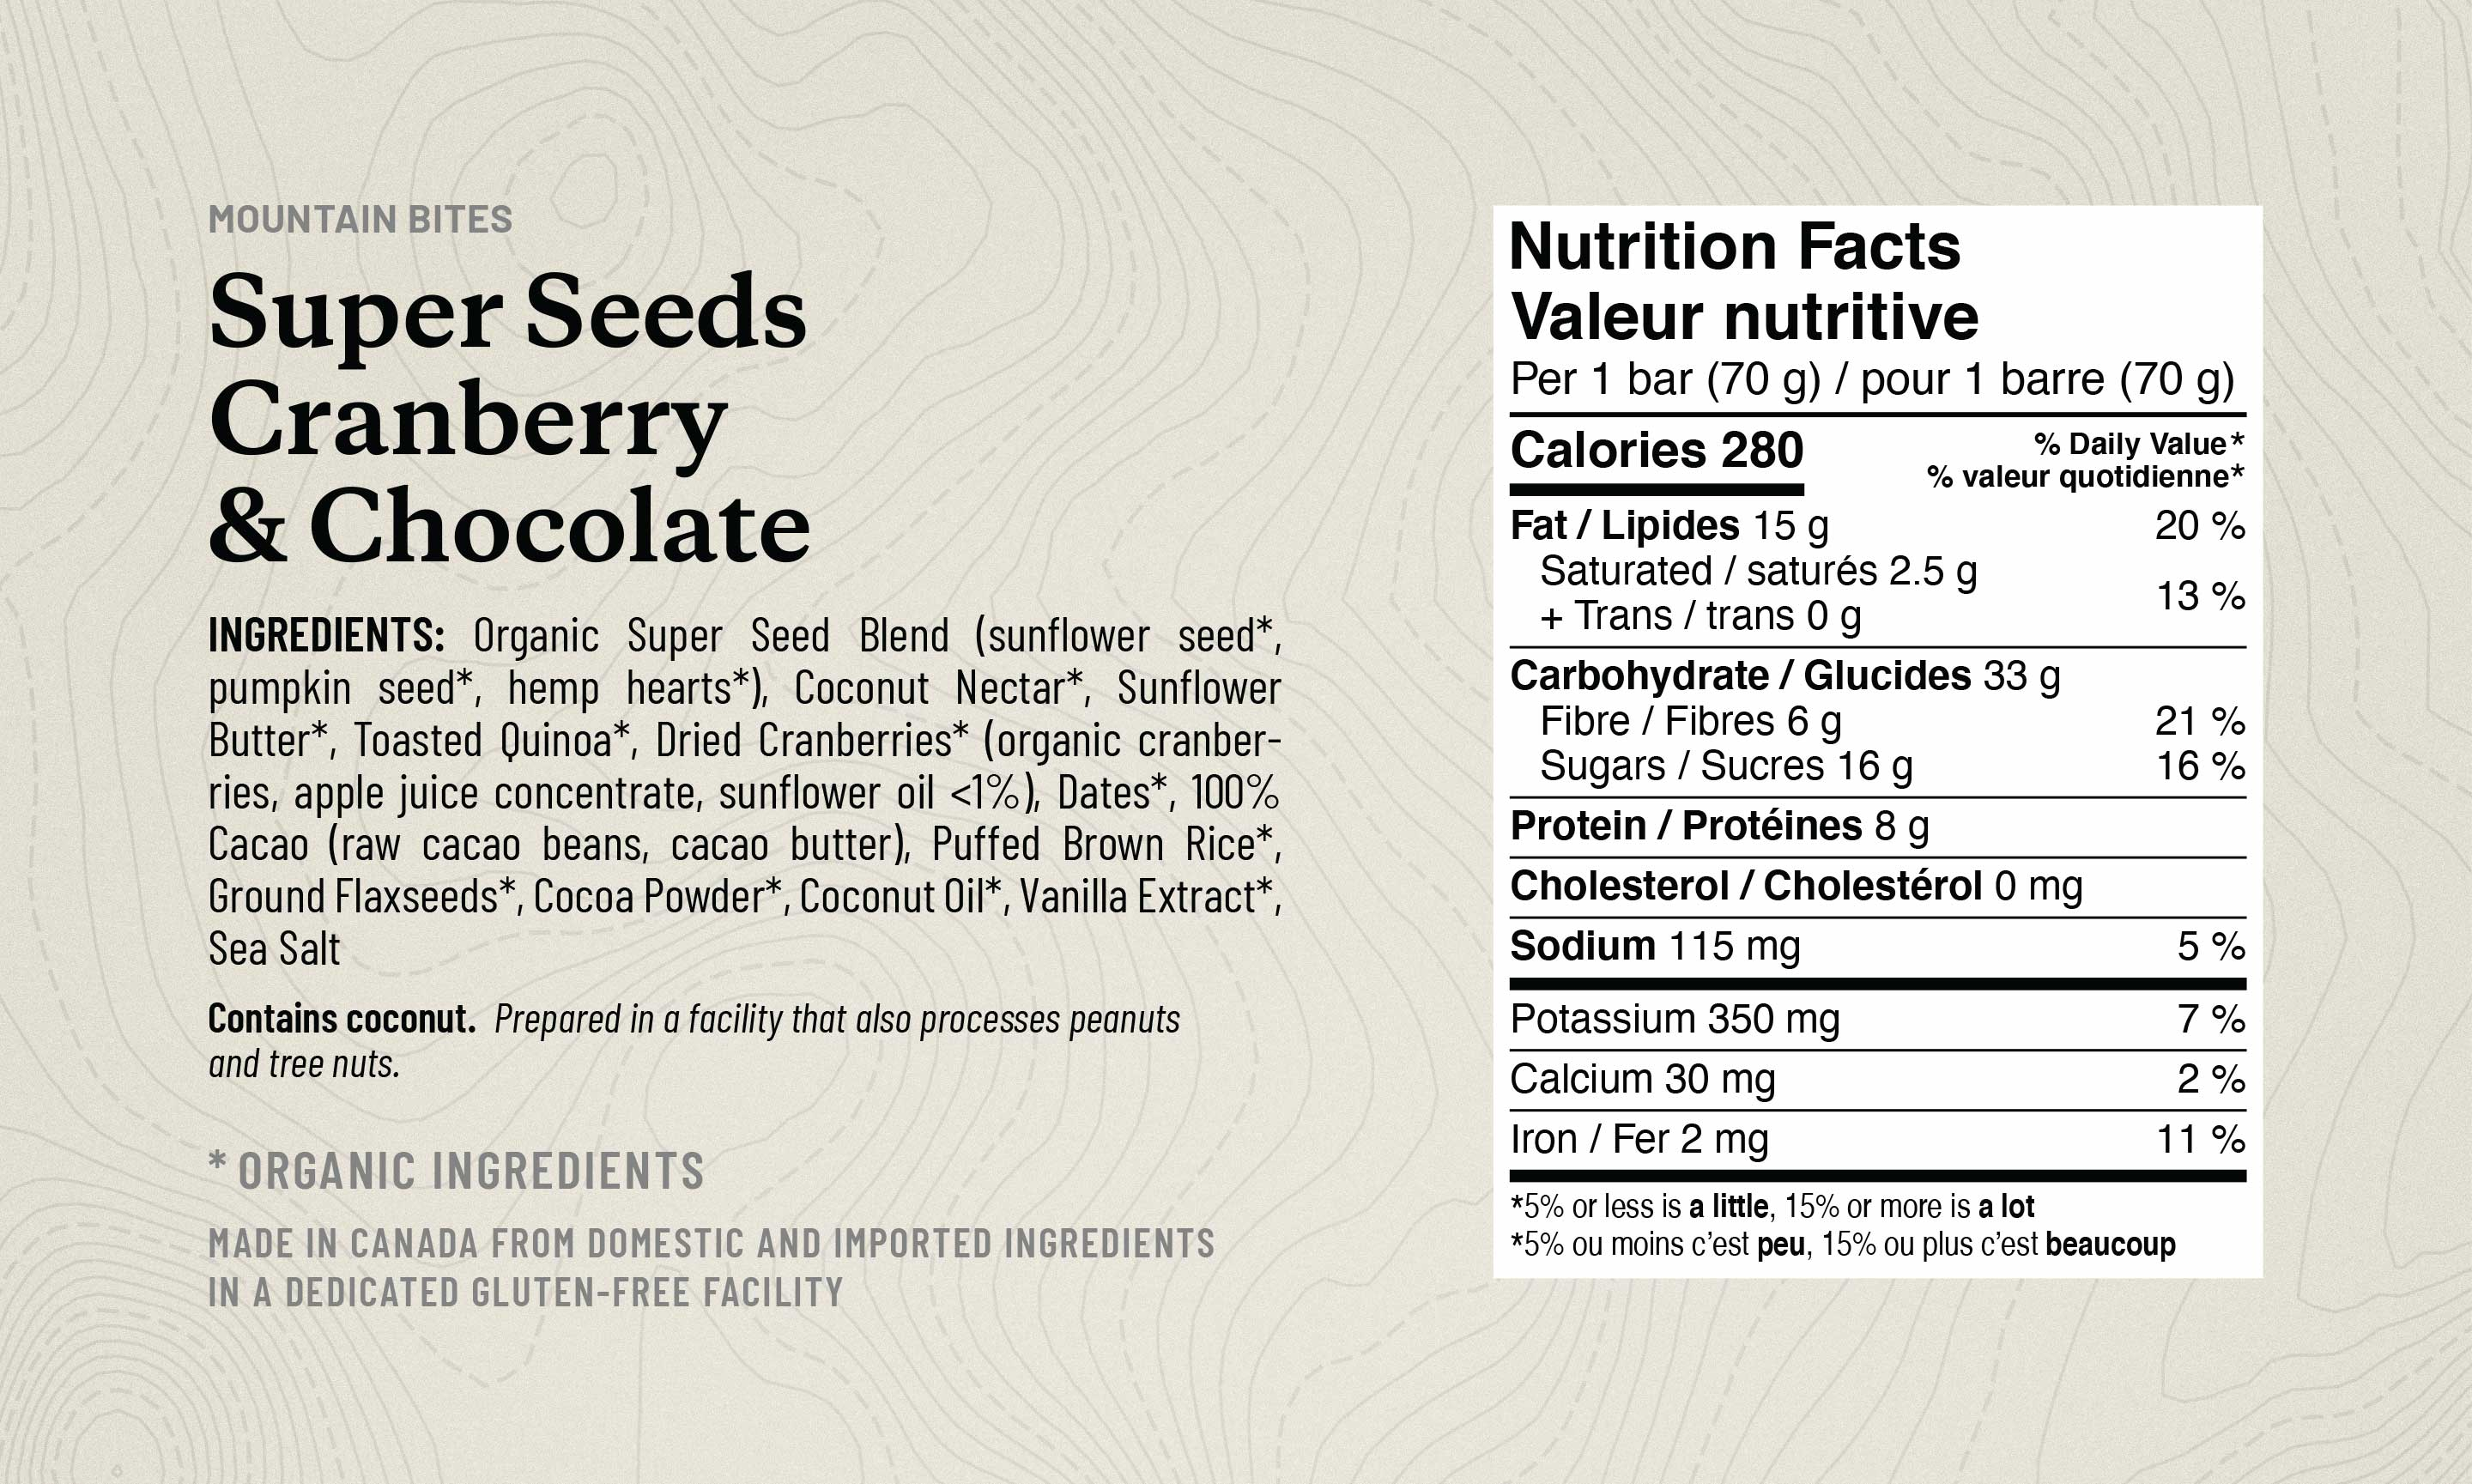 Super Seeds list of ingredients, noting organic ingredients as well as the Nutrition Facts Table